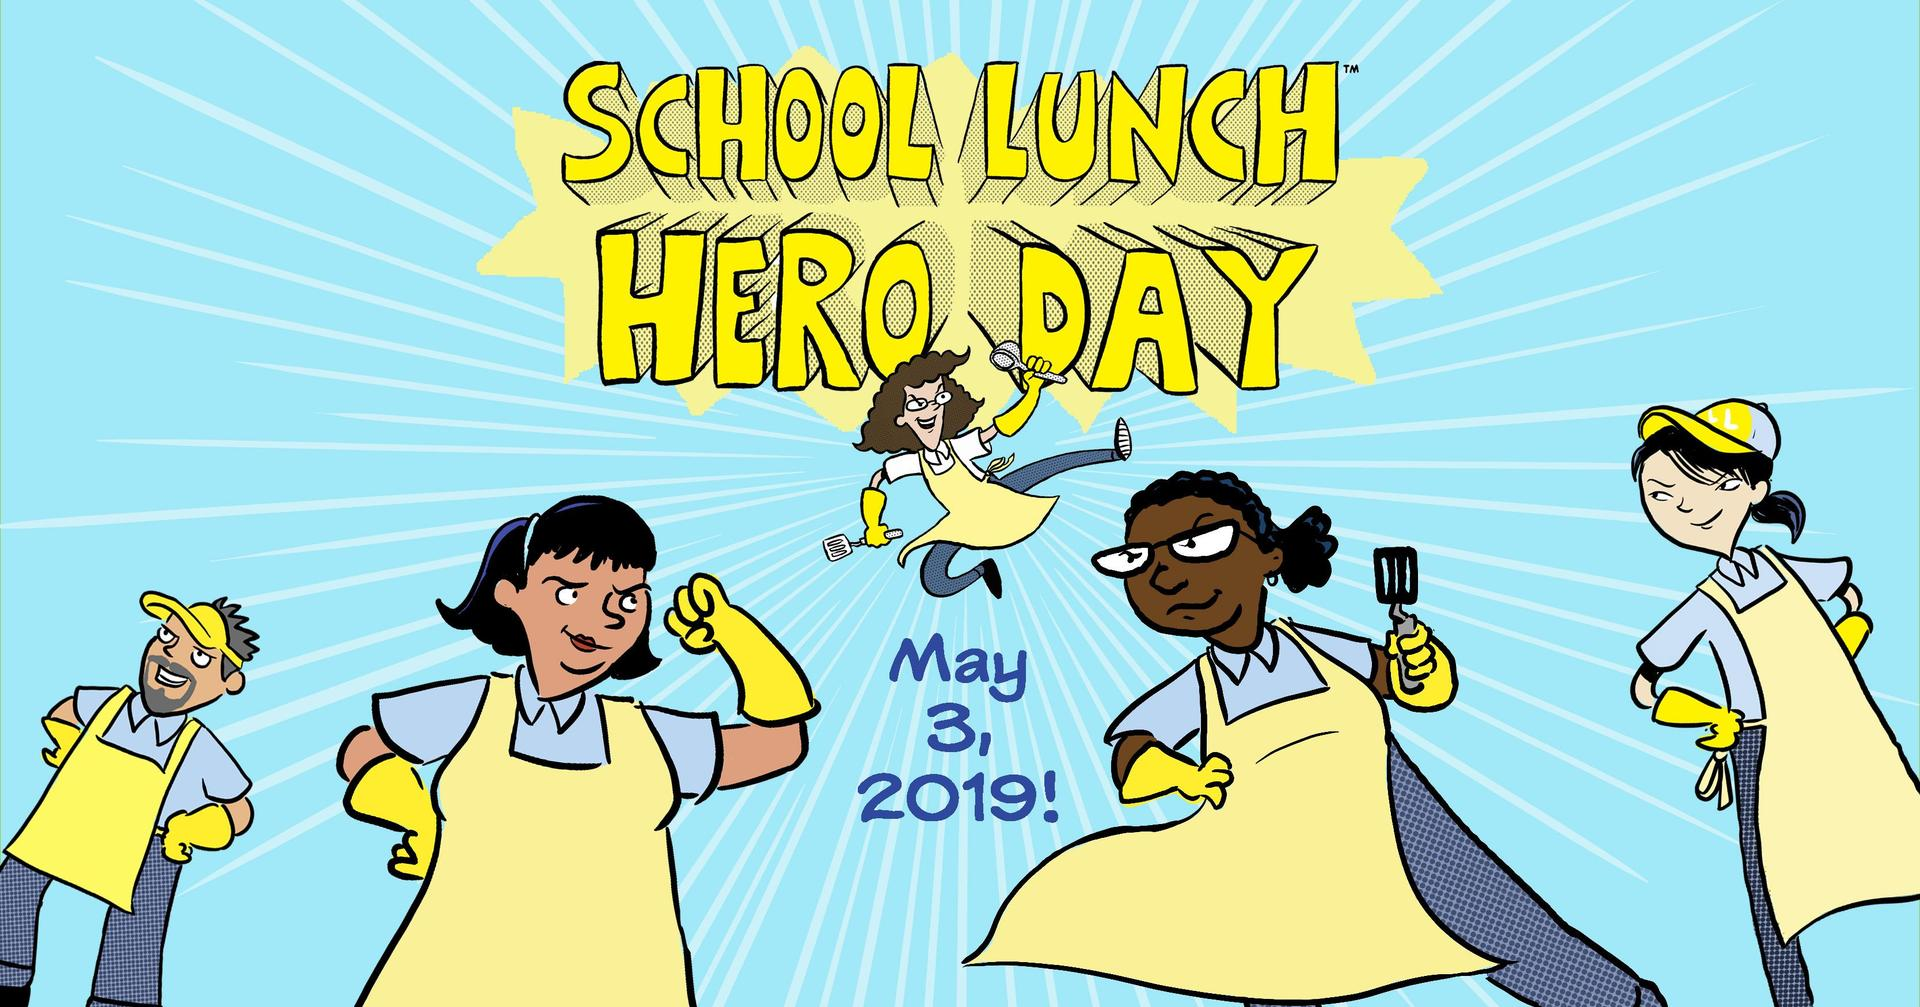 School Lunch Hero Day, May 3rd.